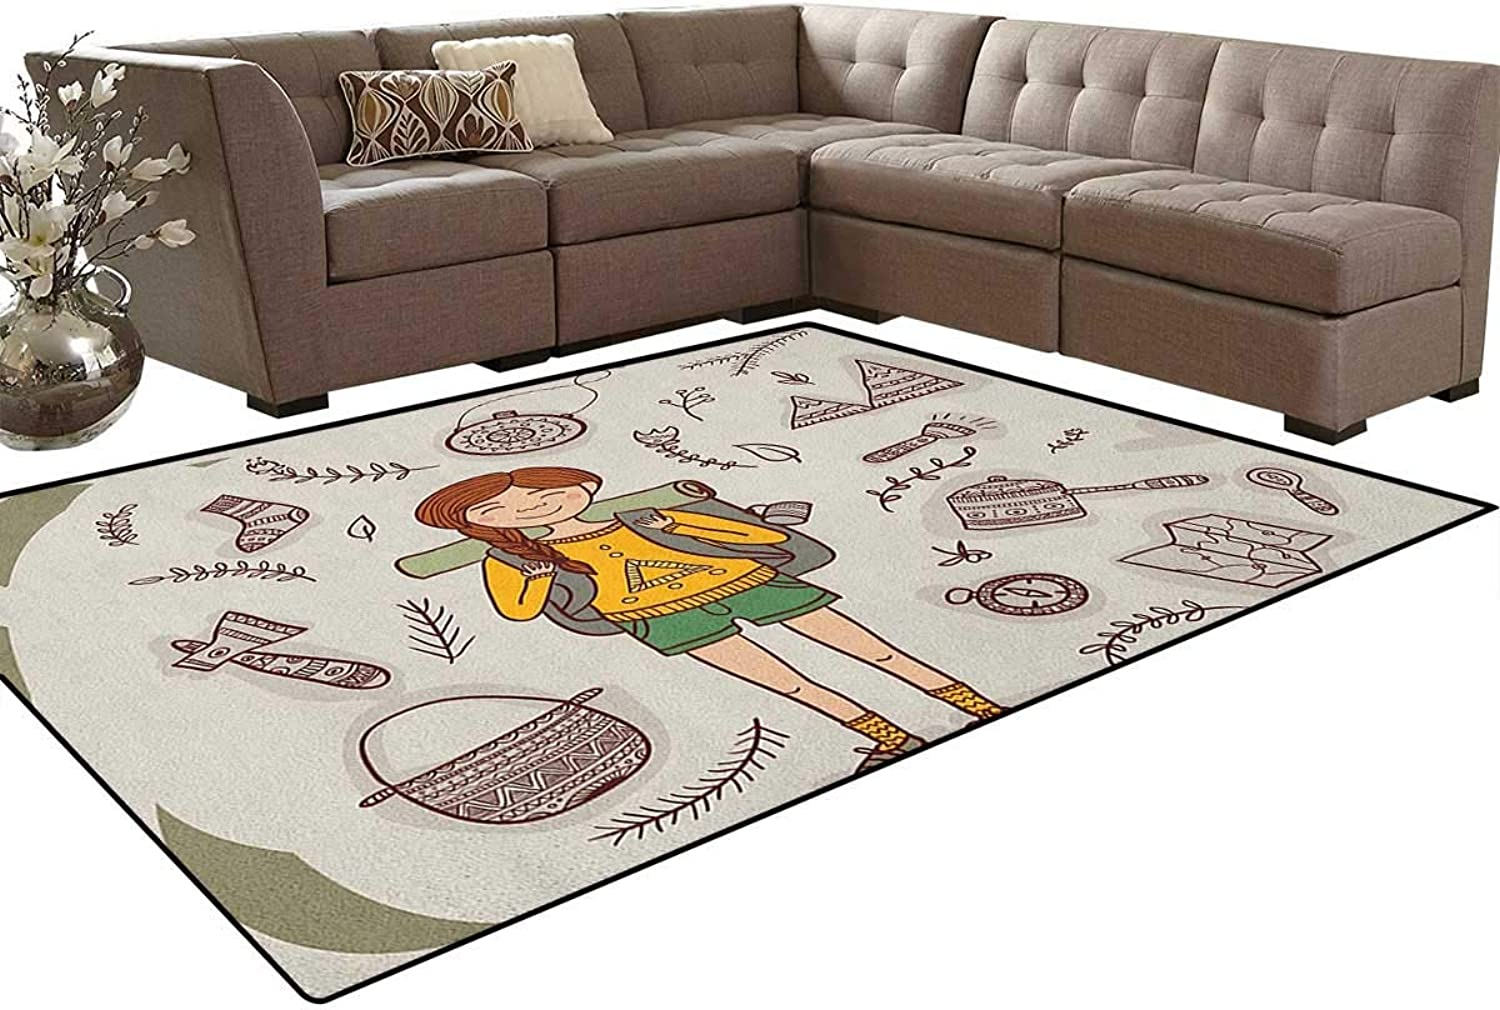 Hiker Girl with a Backpack with Doodle Boho Ethnic Ornate Native American Elements Floor Mat Rug Indoor Front Door Kitchen and Living Room Bedroom Mats Rubber Non Slip